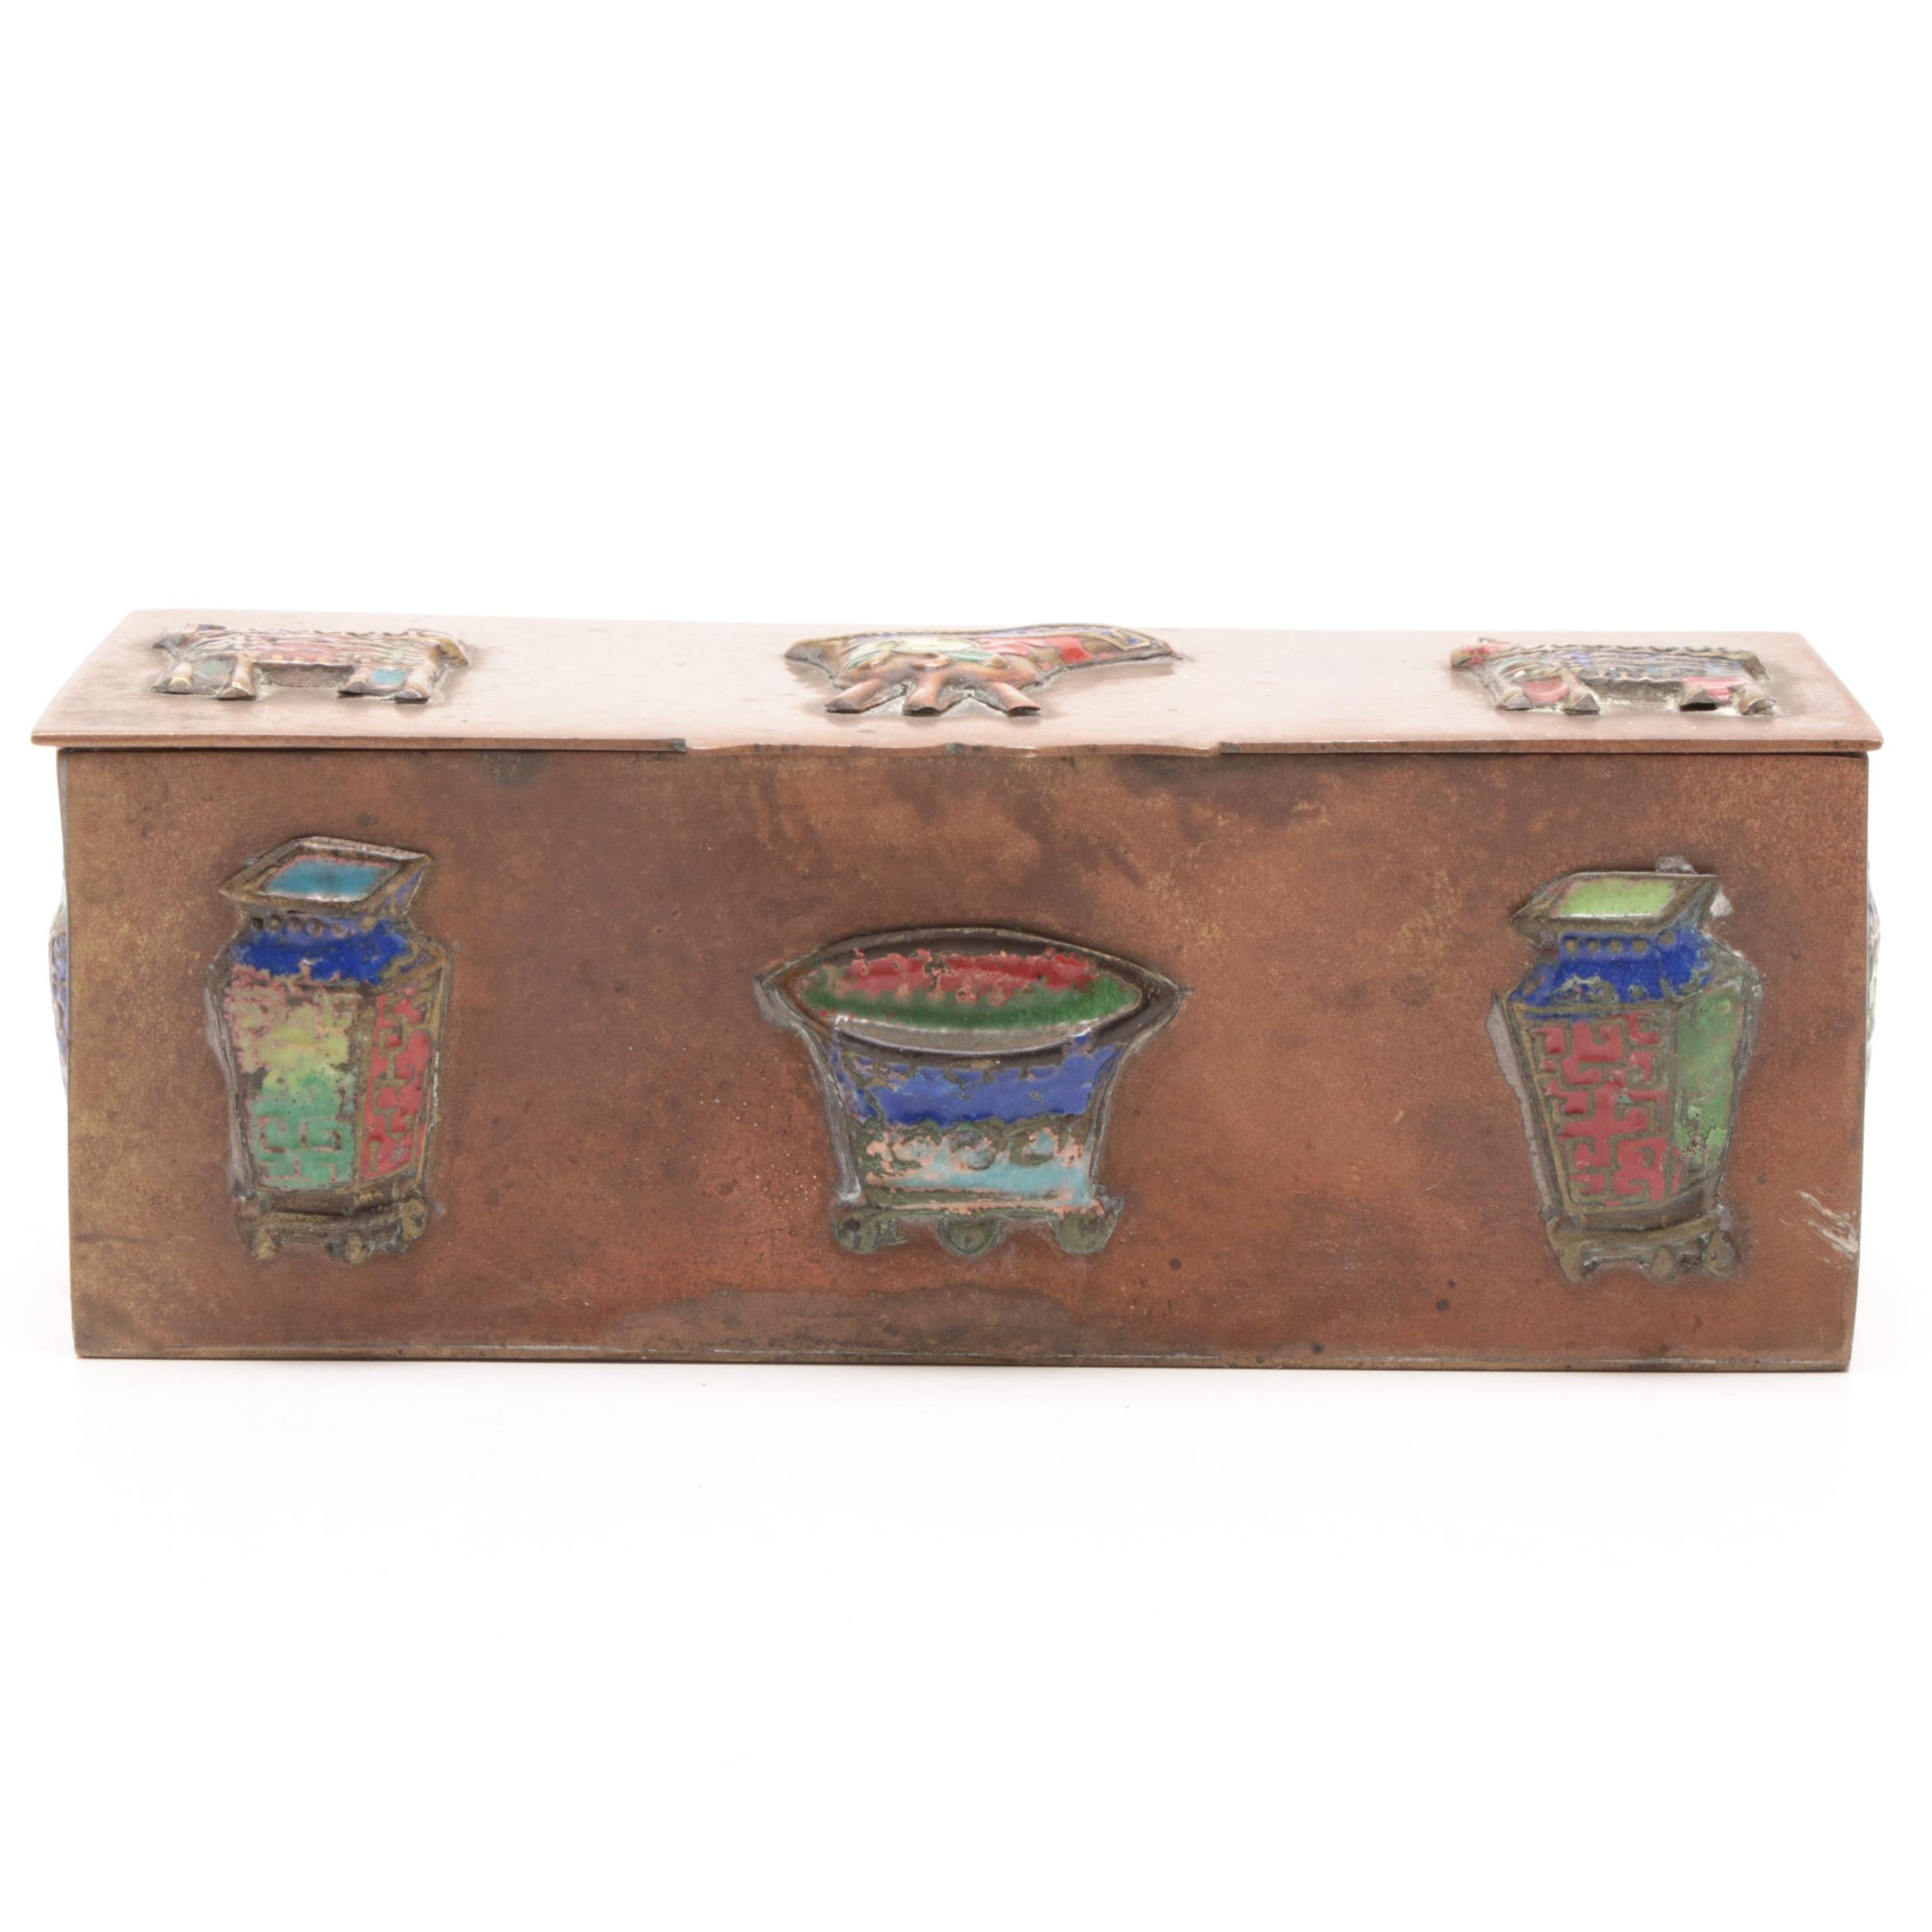 Chinese Brass Box with Enameled Decoration, Late Qing Dynasty/Republic